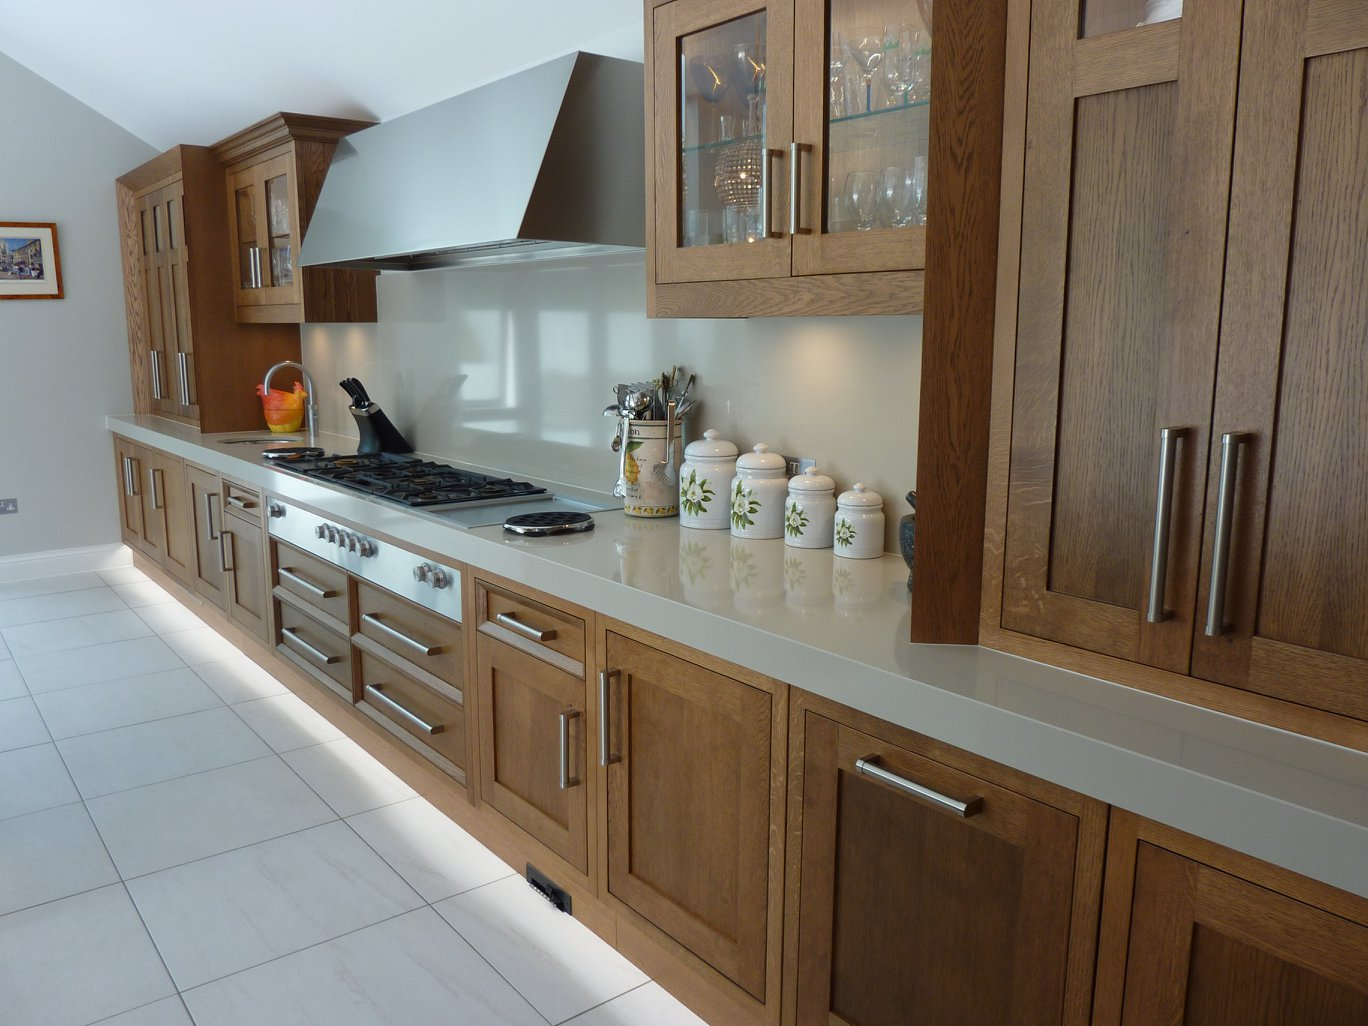 Dark Oak Shaker Style Kitchen-3.jpg